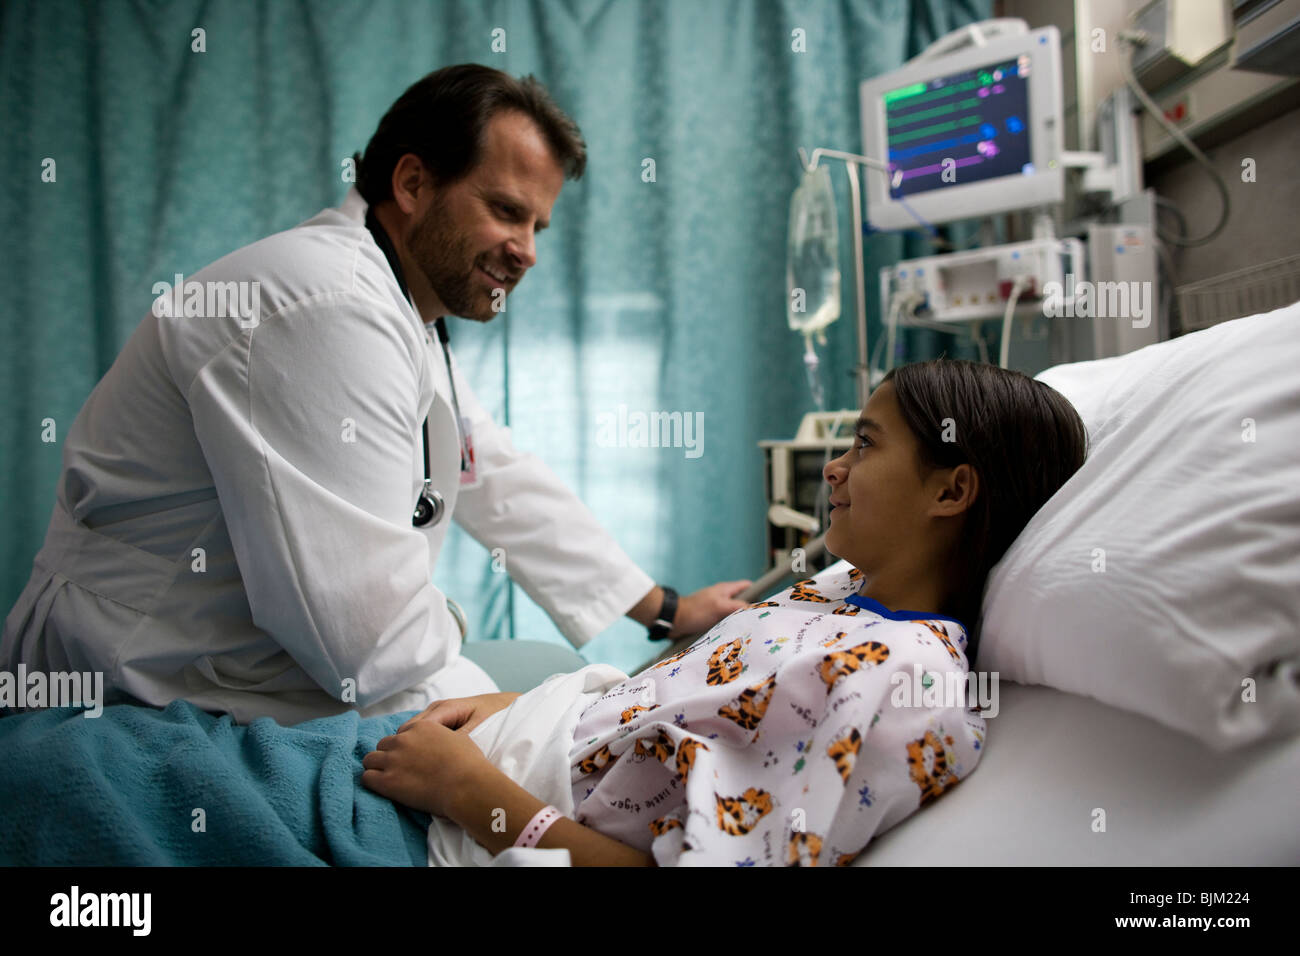 Doctor examining girl in hospital bed - Stock Image